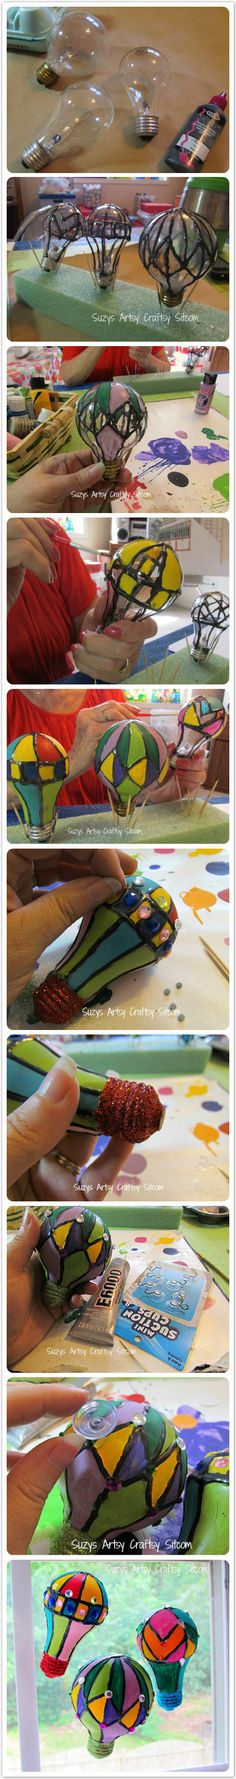 Make Hot Air Balloon Suncatchers from old lightbulbs - Just need different colours to be steampunk-esque!